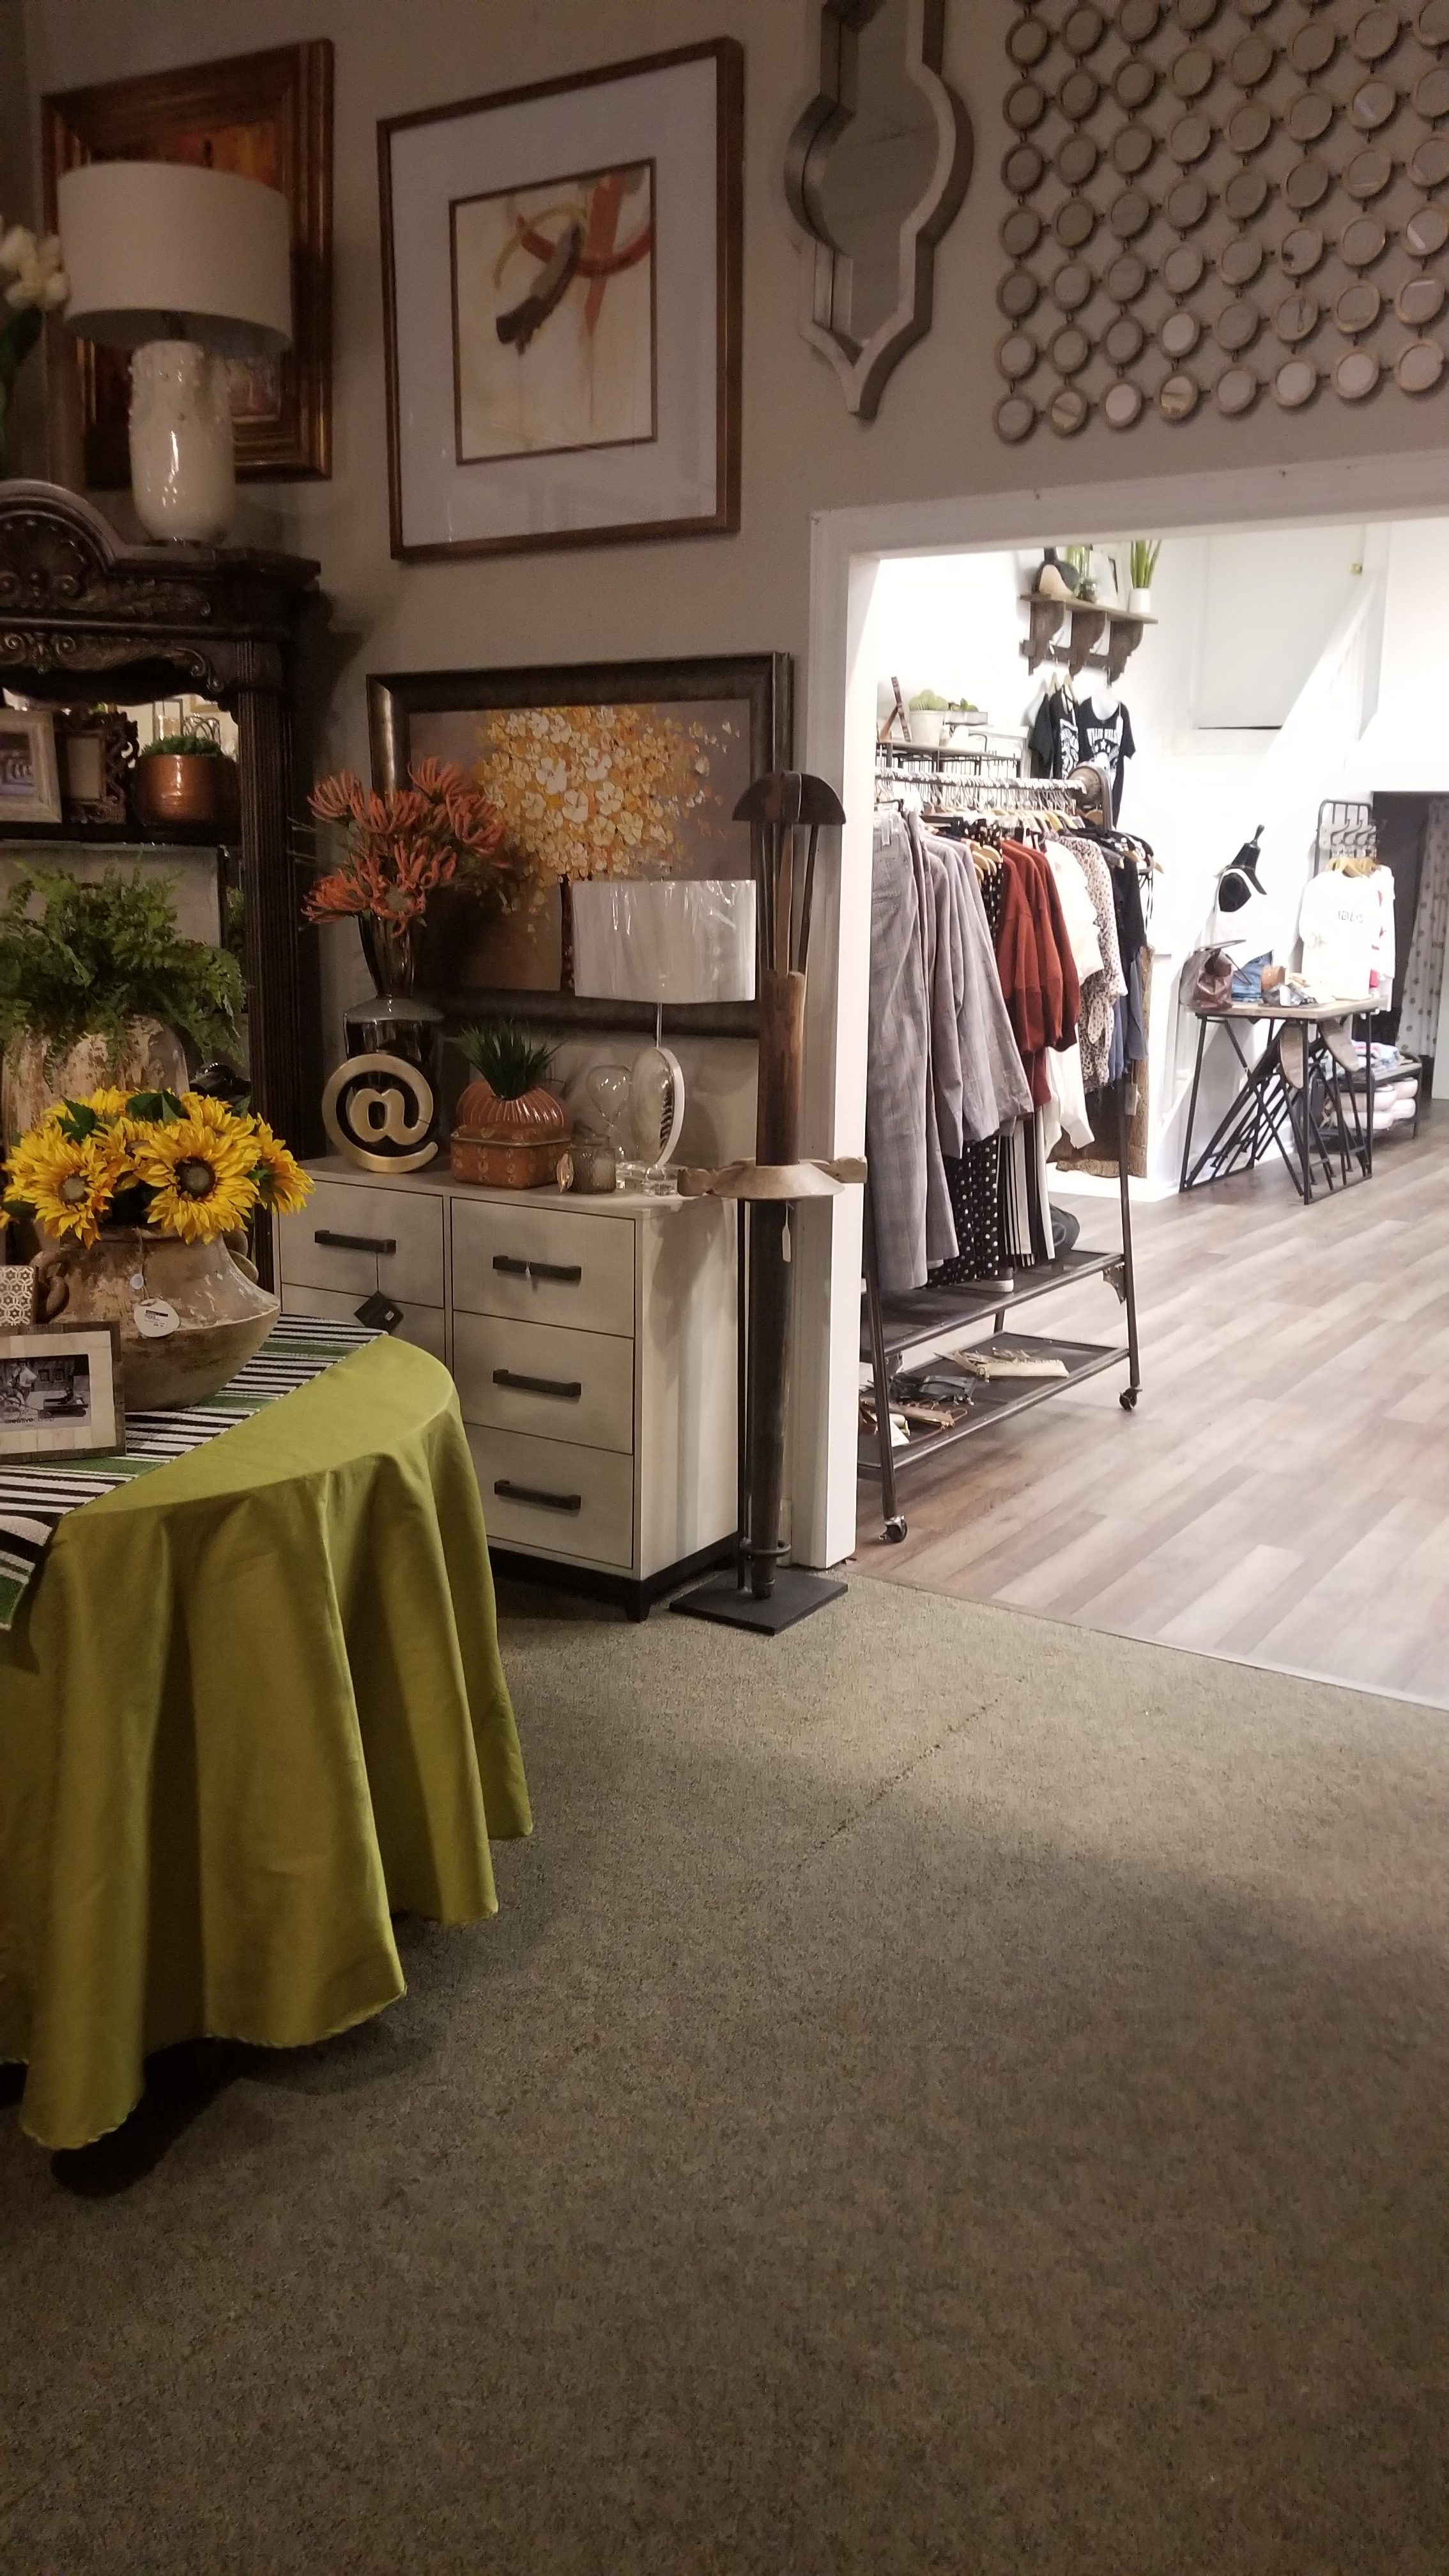 Jongee's Gifts and Boutique features trendy fashions, decor and much more.